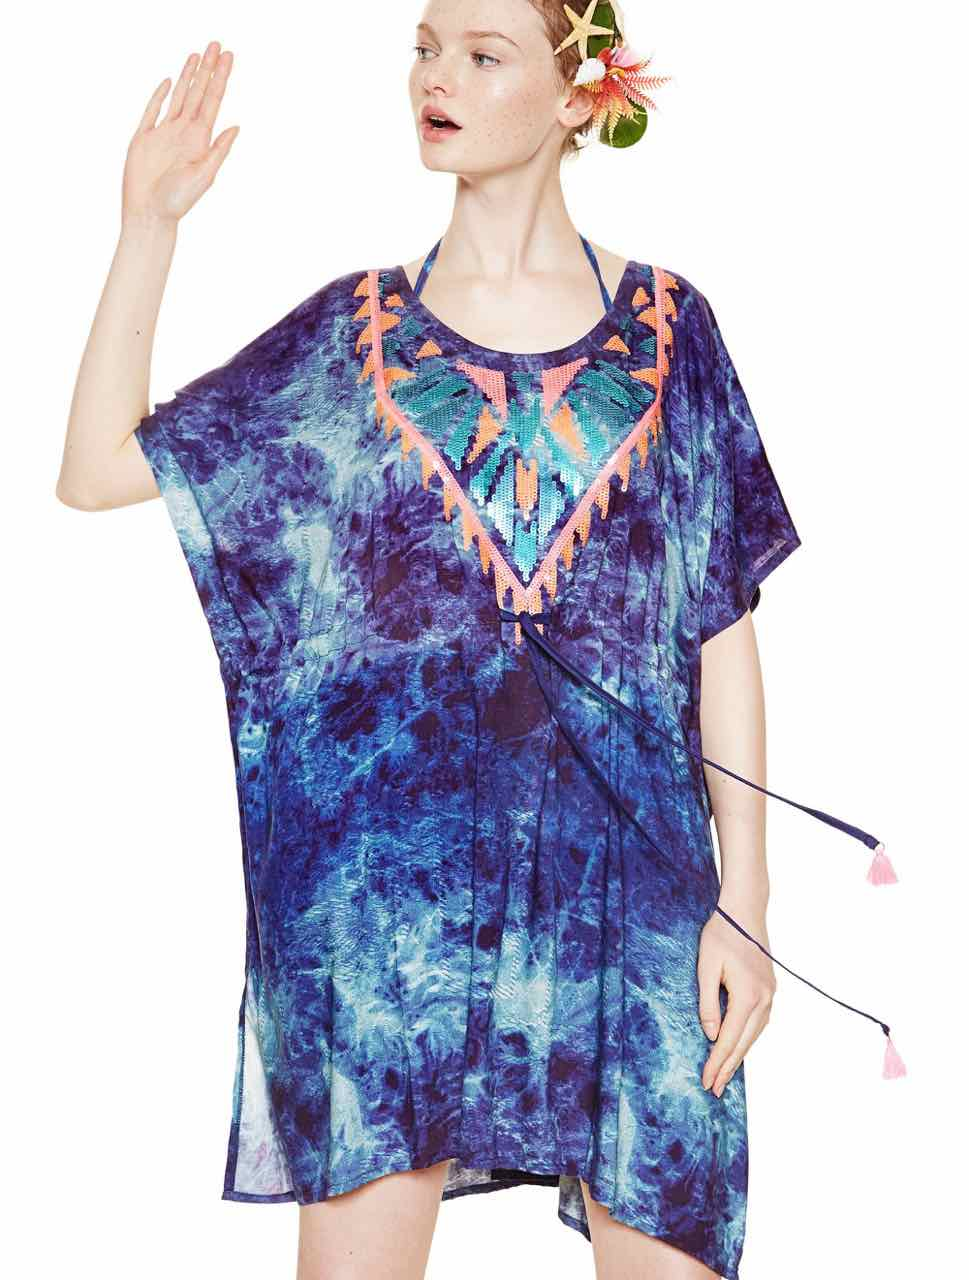 Desigual Blue Tie-Dye France Kaftan Top S-